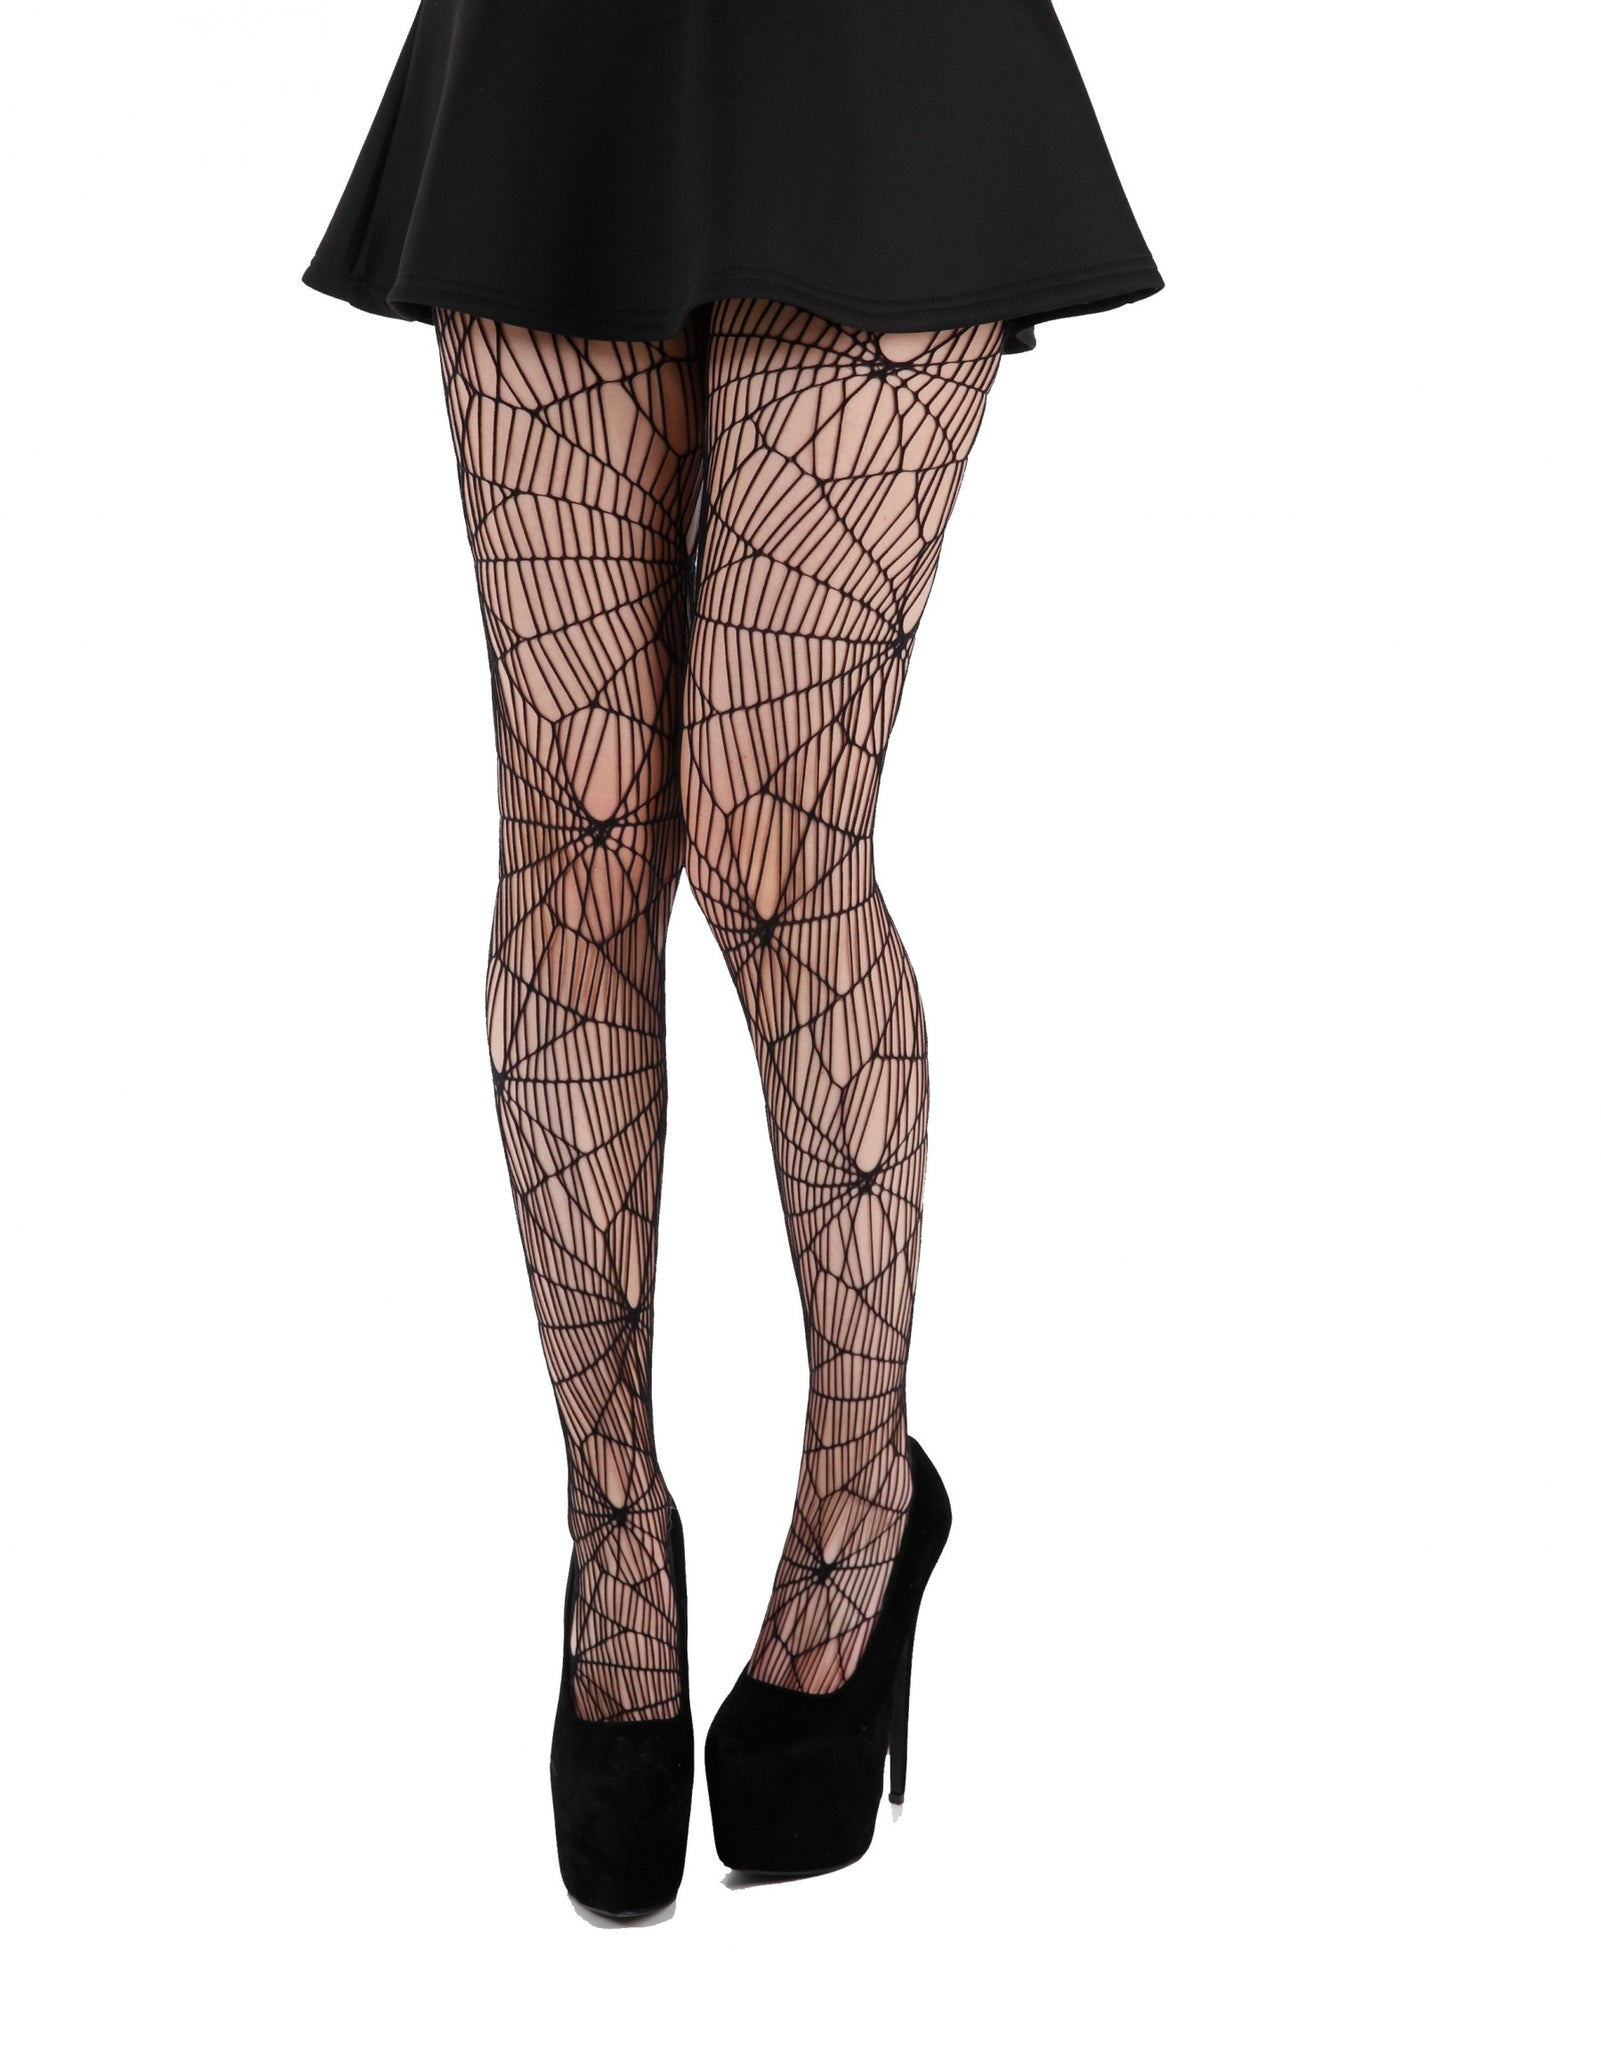 Pamela Mann Cobweb Pattern Black Net Halloween Tights; Pamela Mann; Halloween Tights; Net Tights; Cobweb Pattern Design; Black